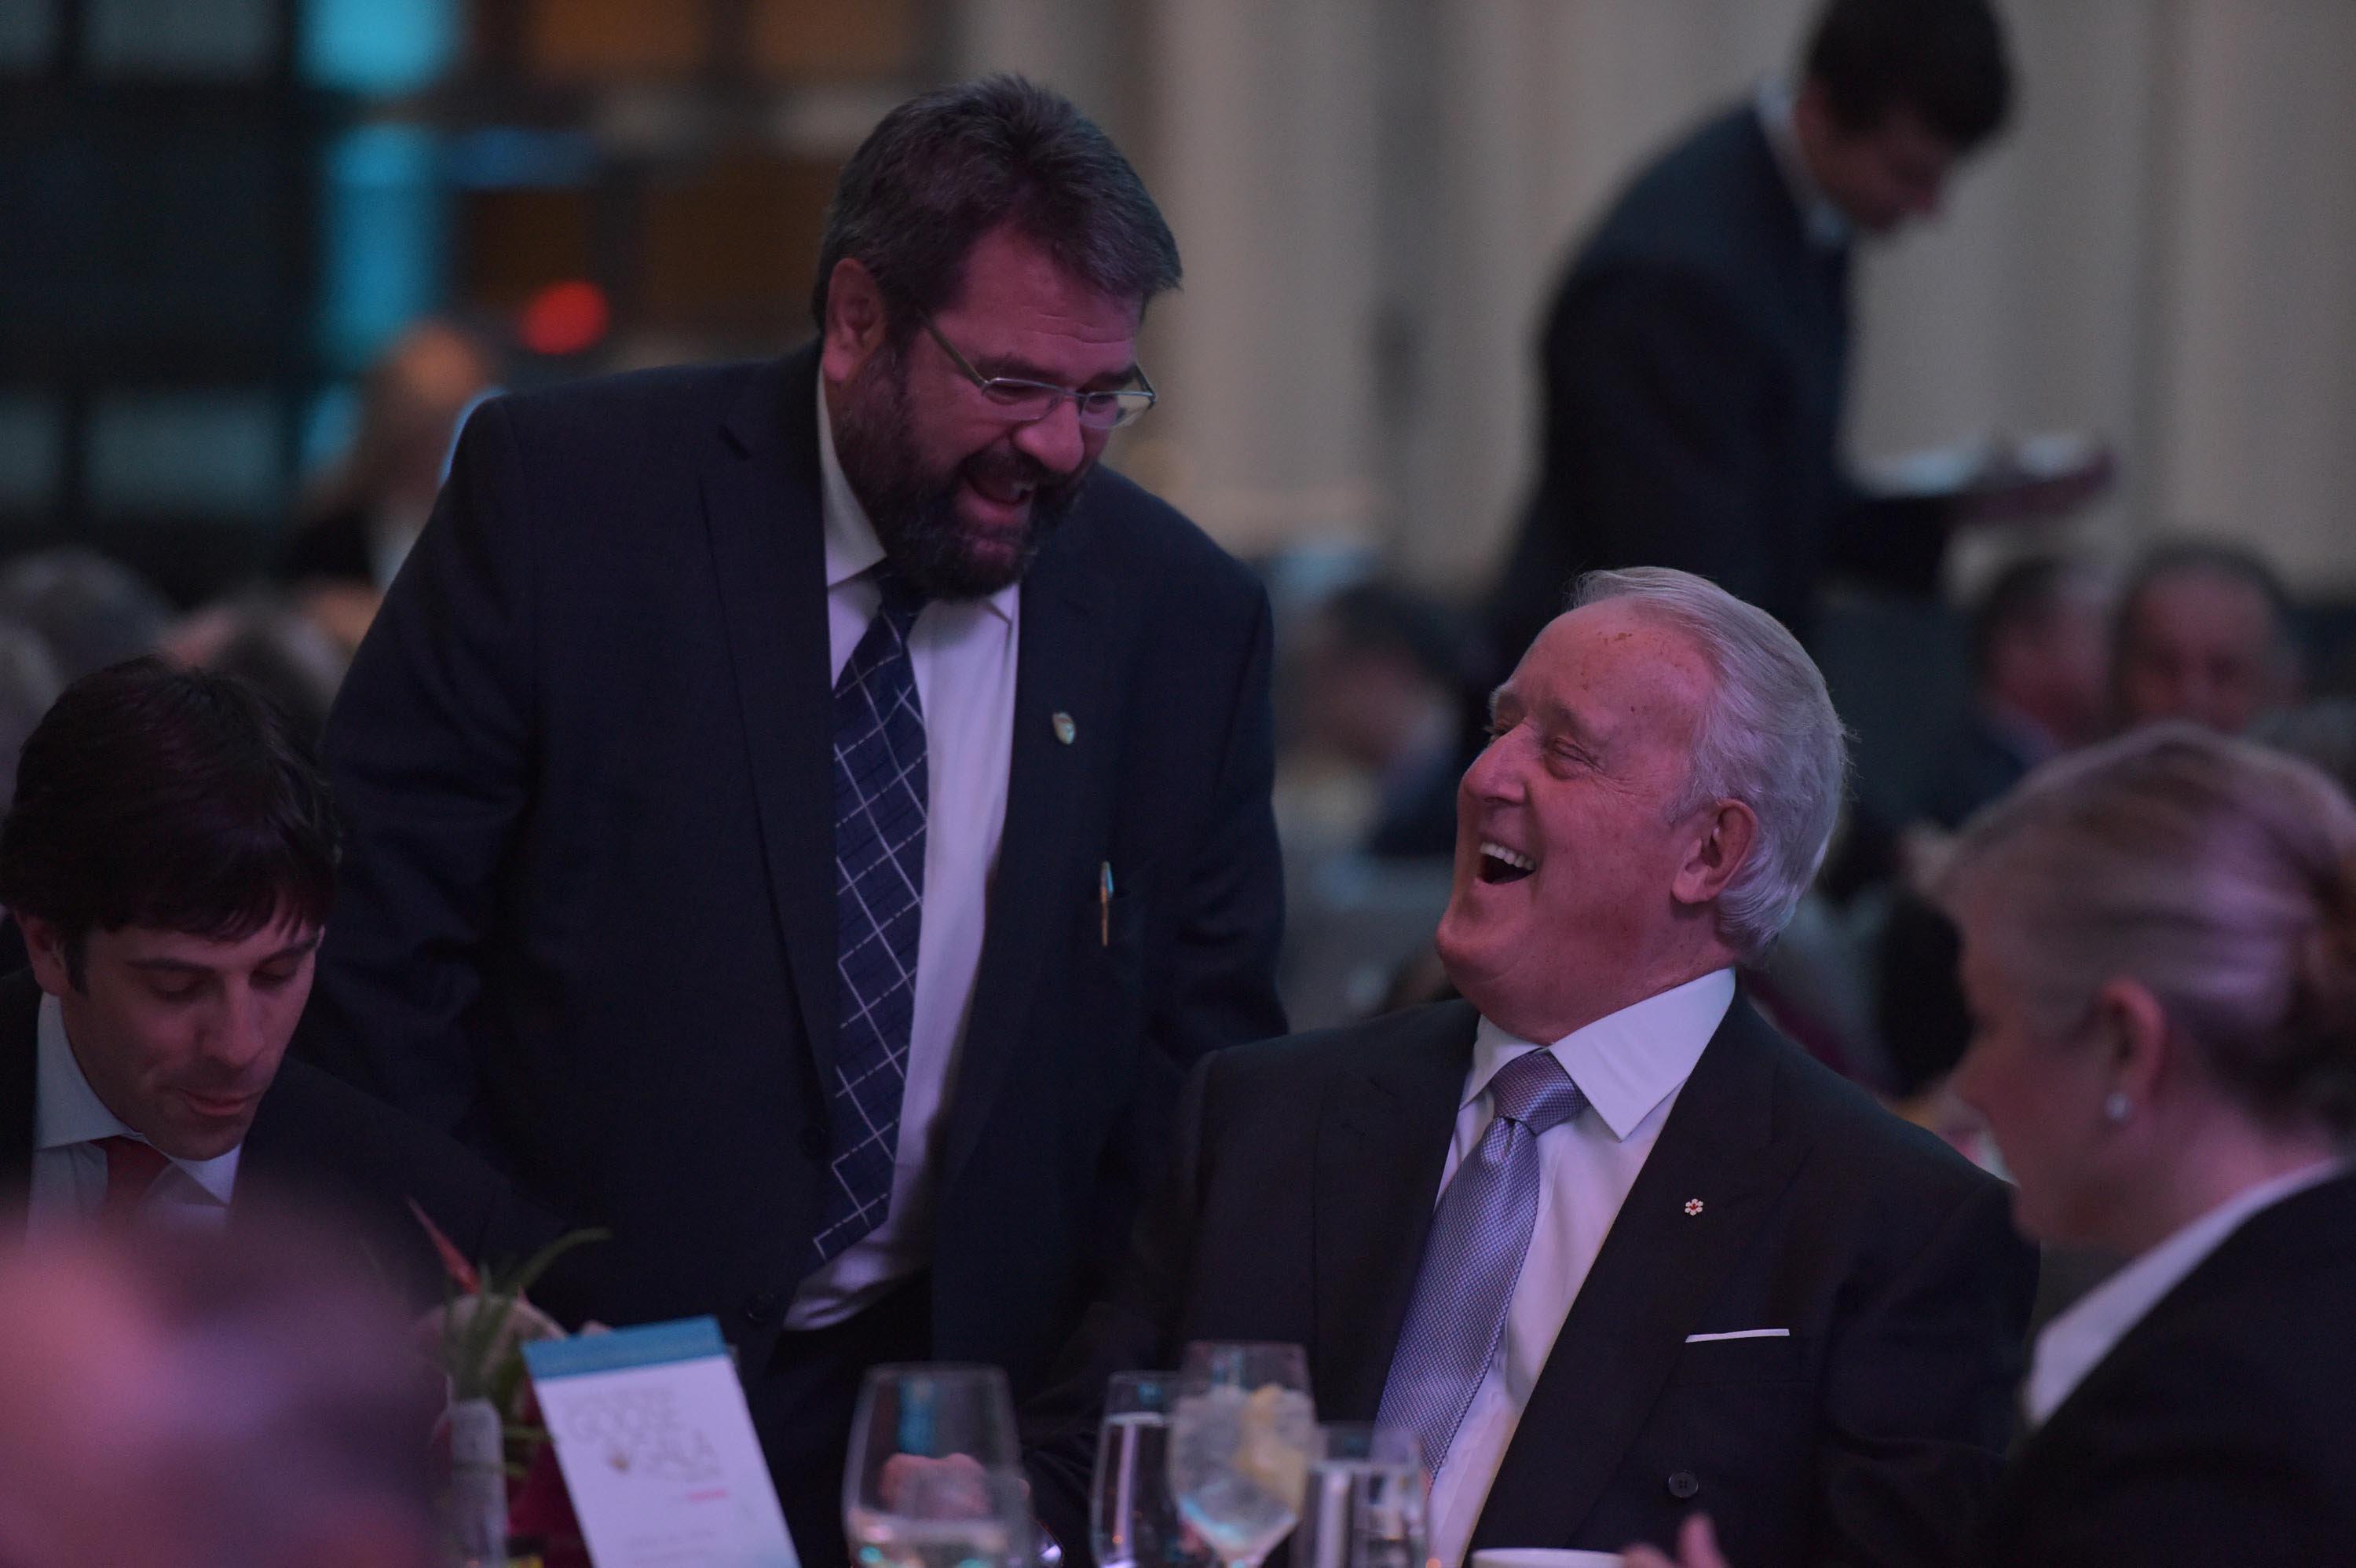 Nicolas Laurin and the Right Honourable Brian Mulroney